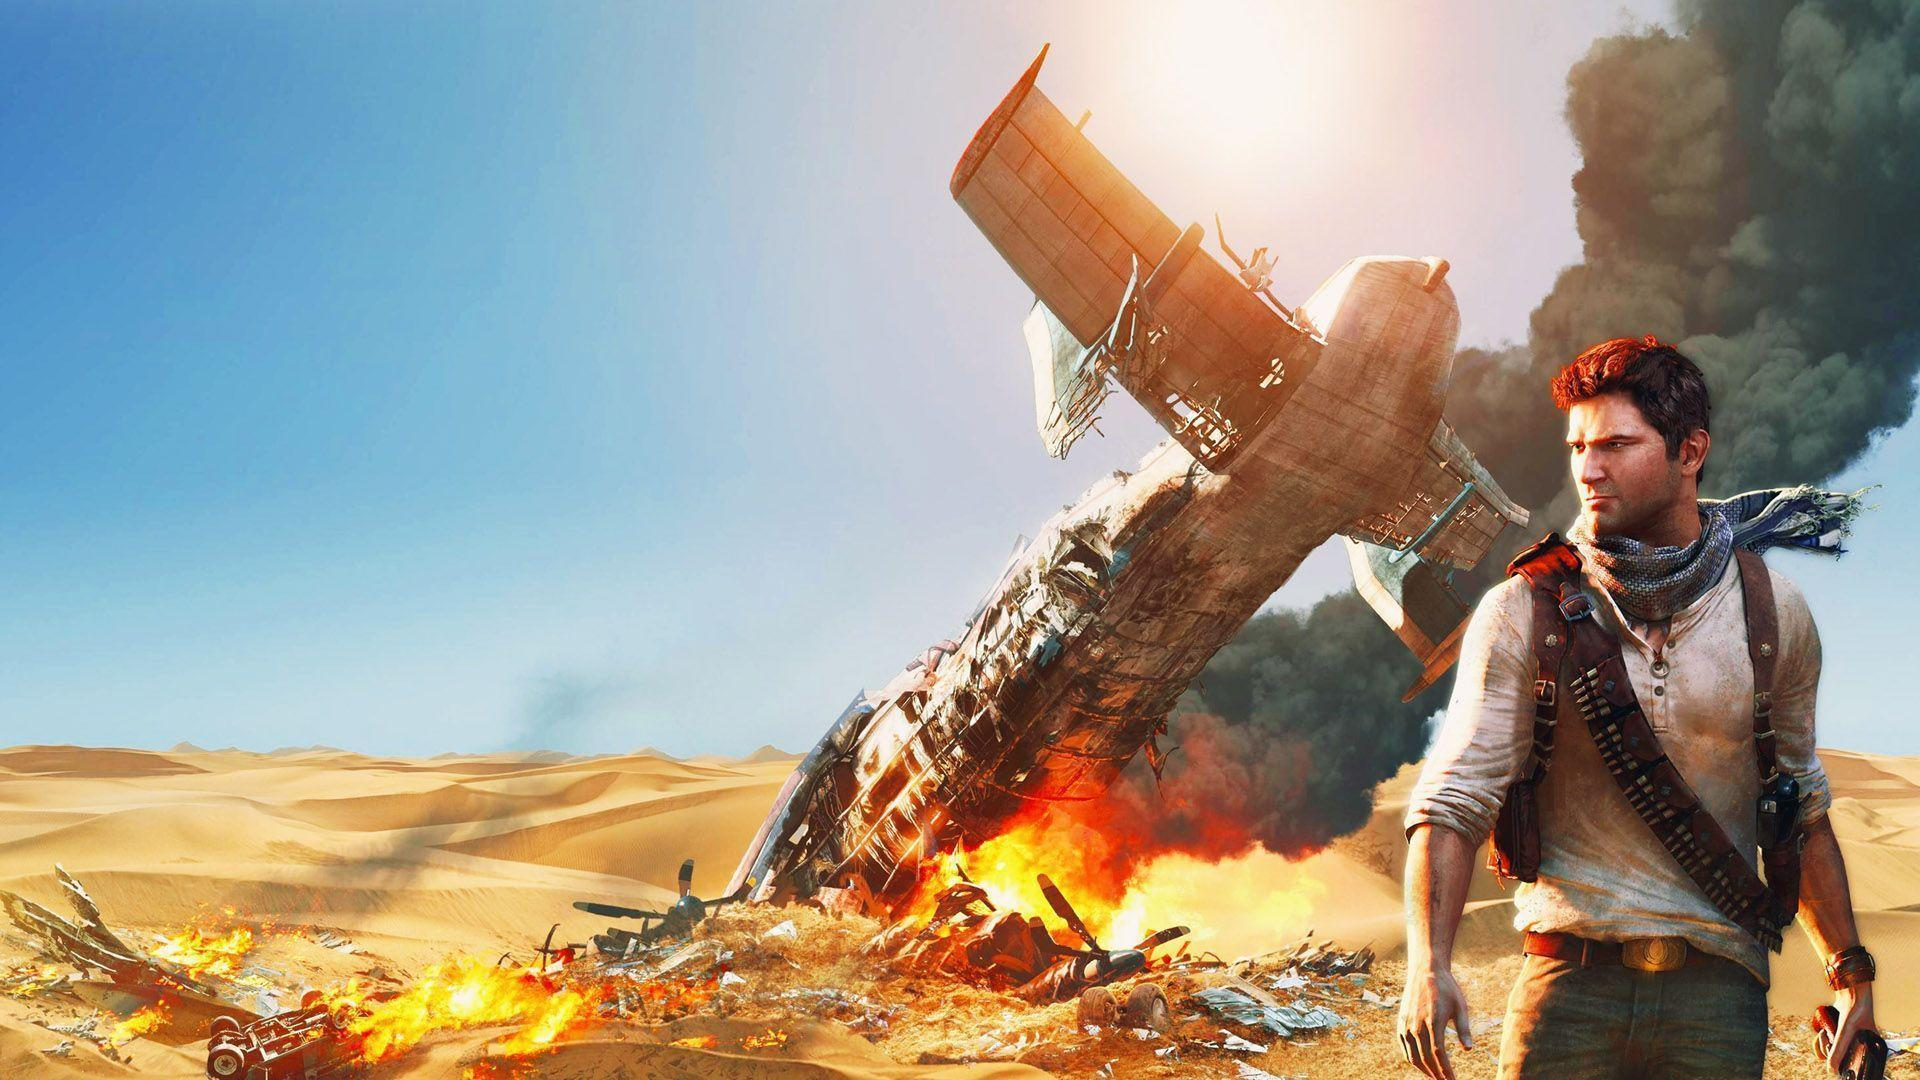 Awesome Uncharted Wallpaper 28433 1920x1080 px ~ HDWallSource.